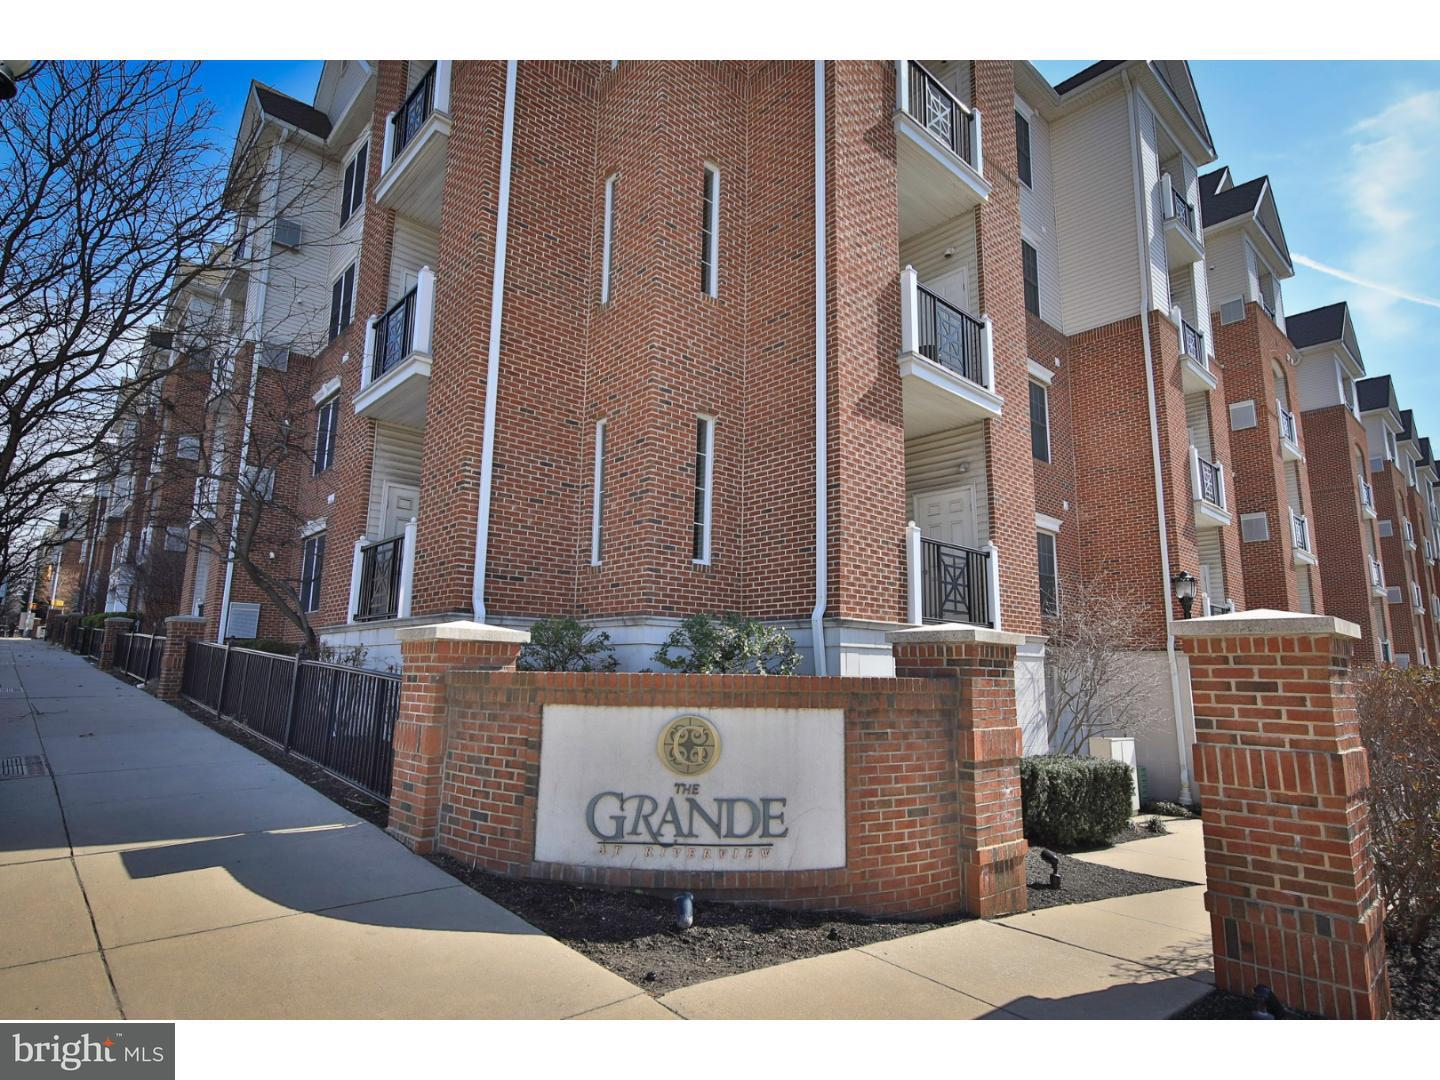 Single Family Home for Sale at 200 W ELM ST #1230 Conshohocken, Pennsylvania 19428 United States